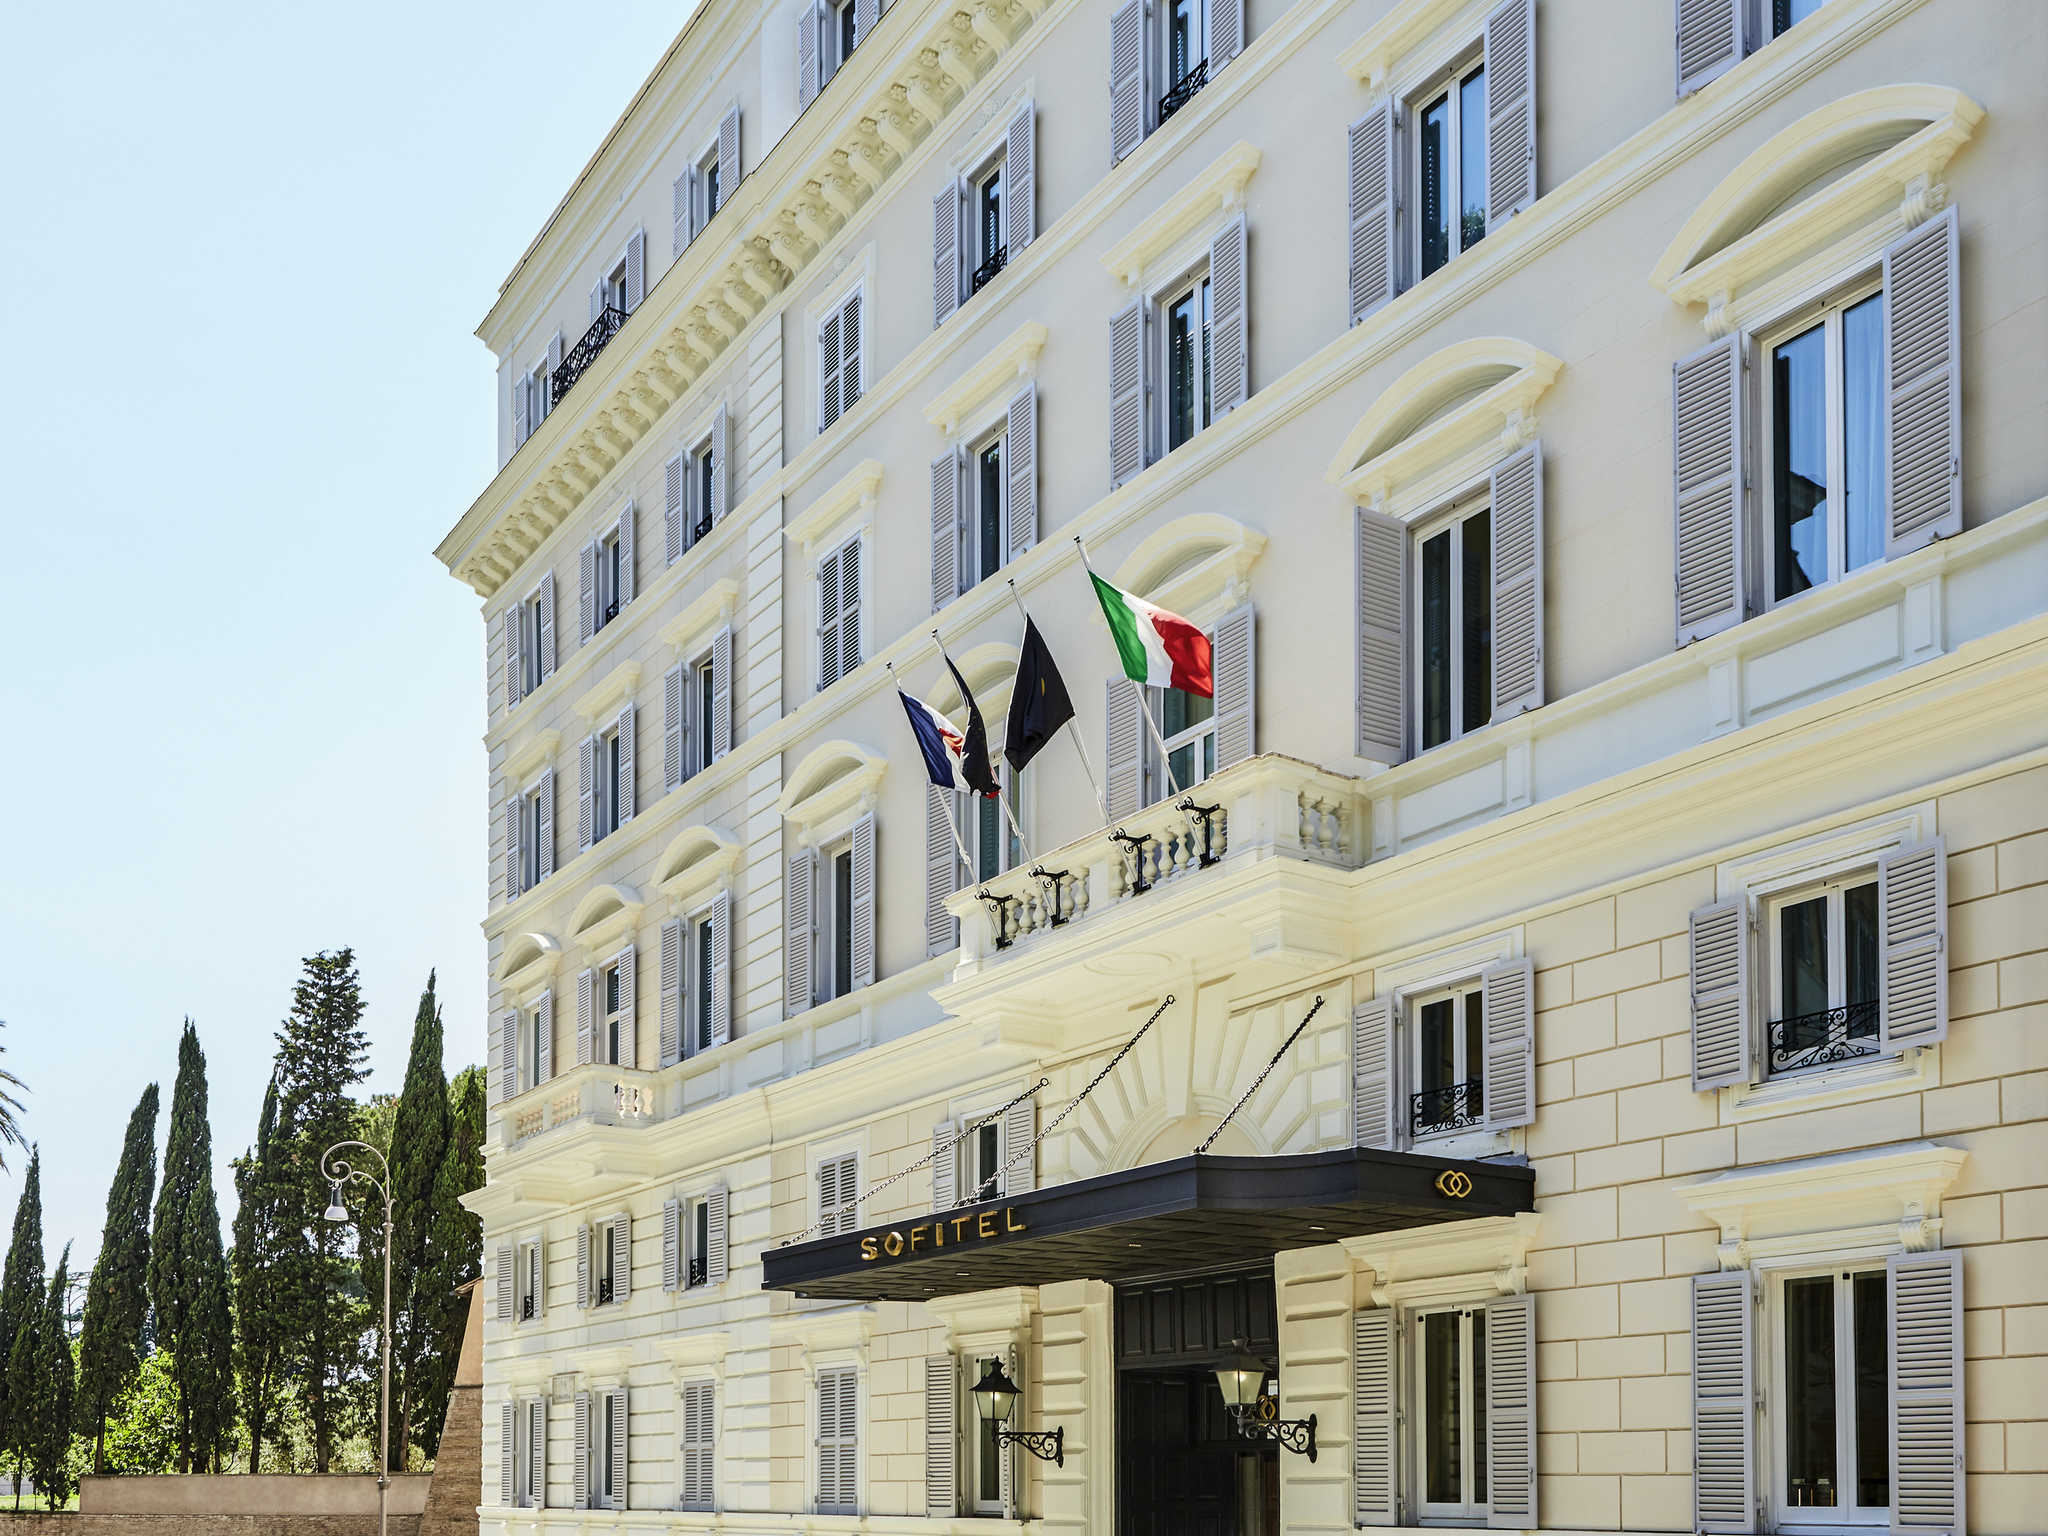 Hotel - Sofitel Roma (reopens renovated end of Spring)